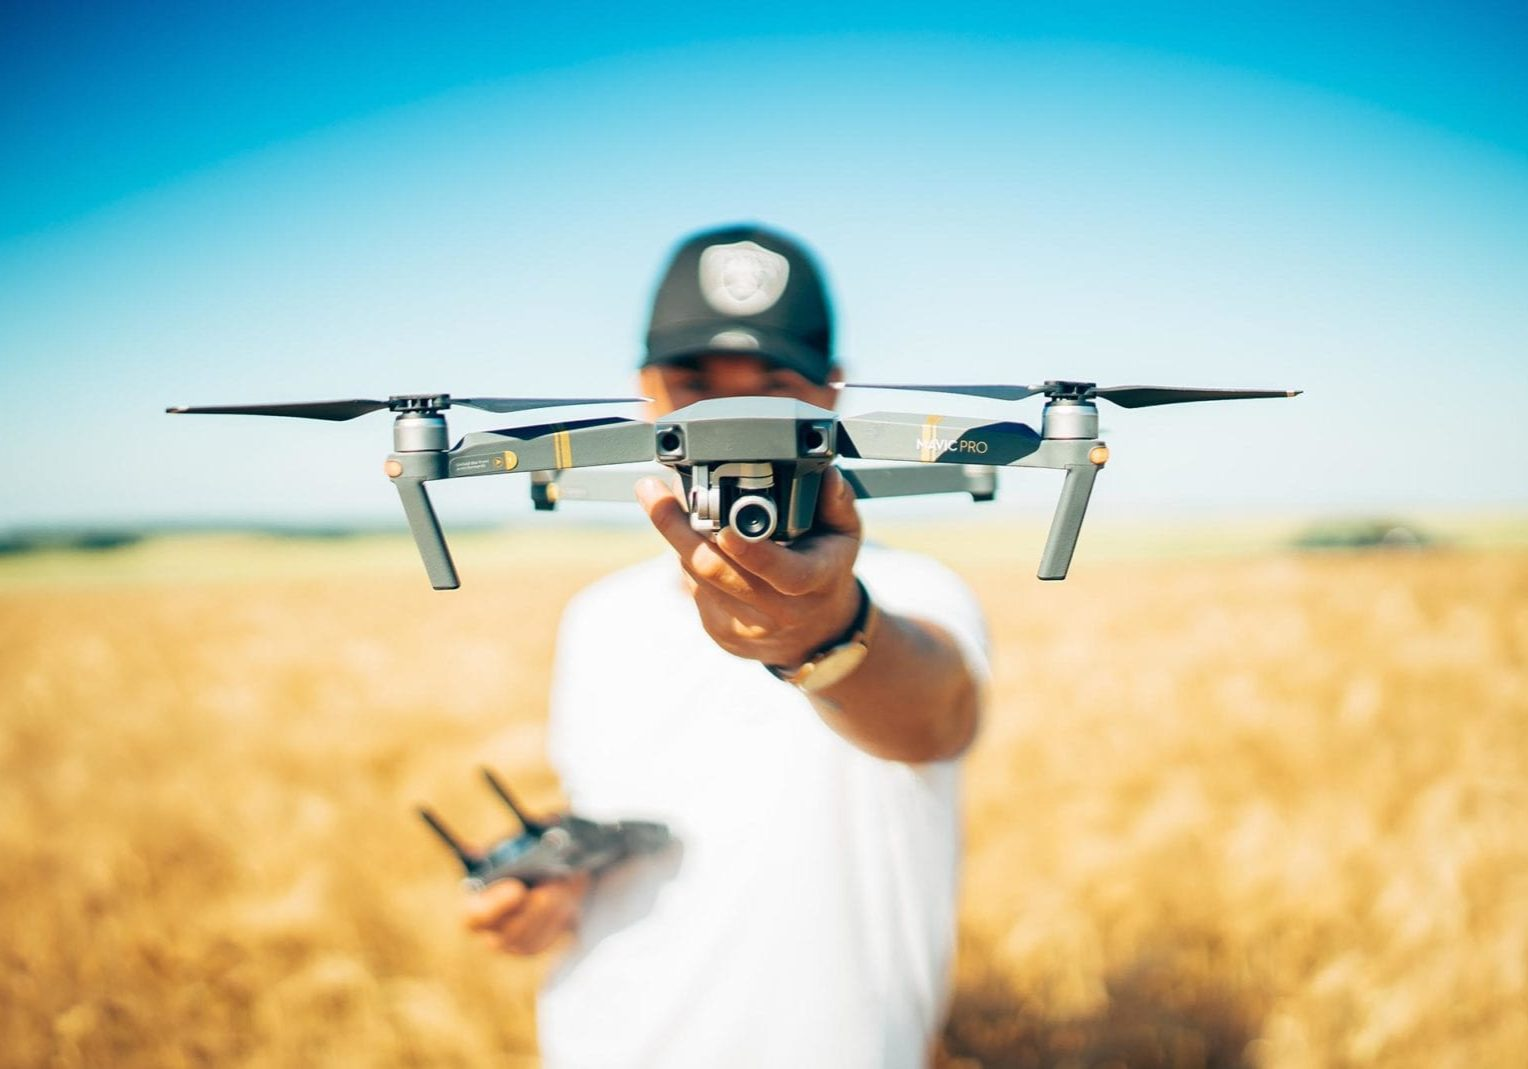 student pilot holding drone and remote control